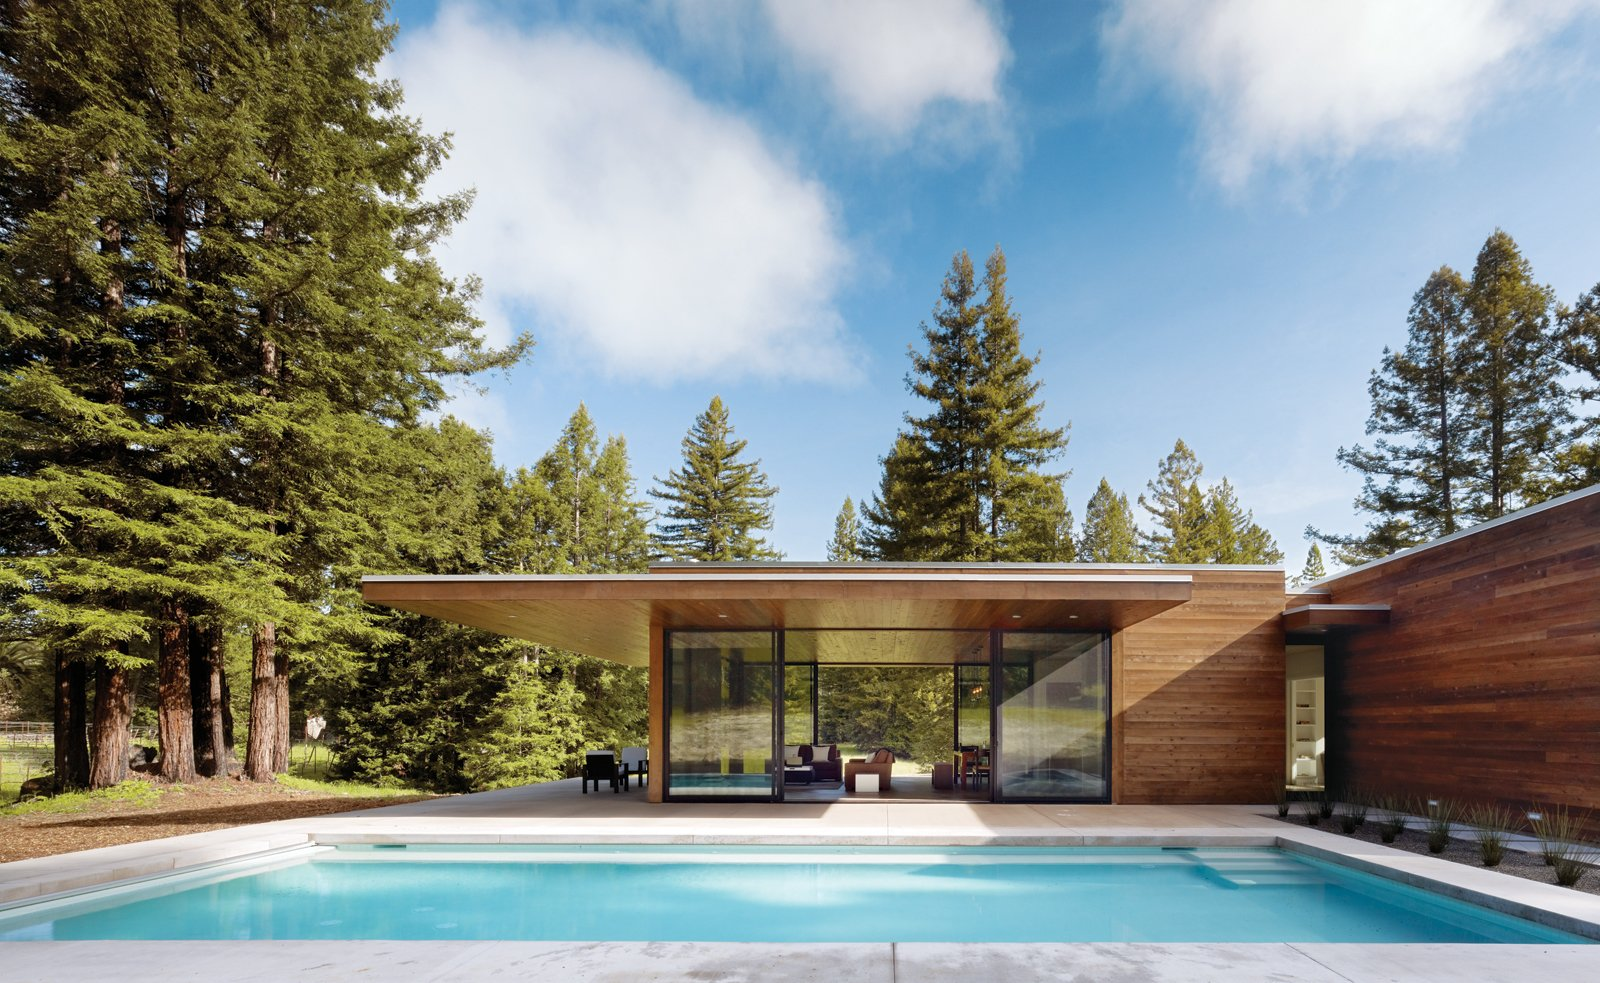 Two linked 1,000-square-foot pavilions are greater than a sum of their parts. The simply detailed, taut, flat-roofed home's two wings form a T-shape. One wing runs north to south, parallel to a pool, and contains the open-plan living spaces. Photo by Matthew Millman.